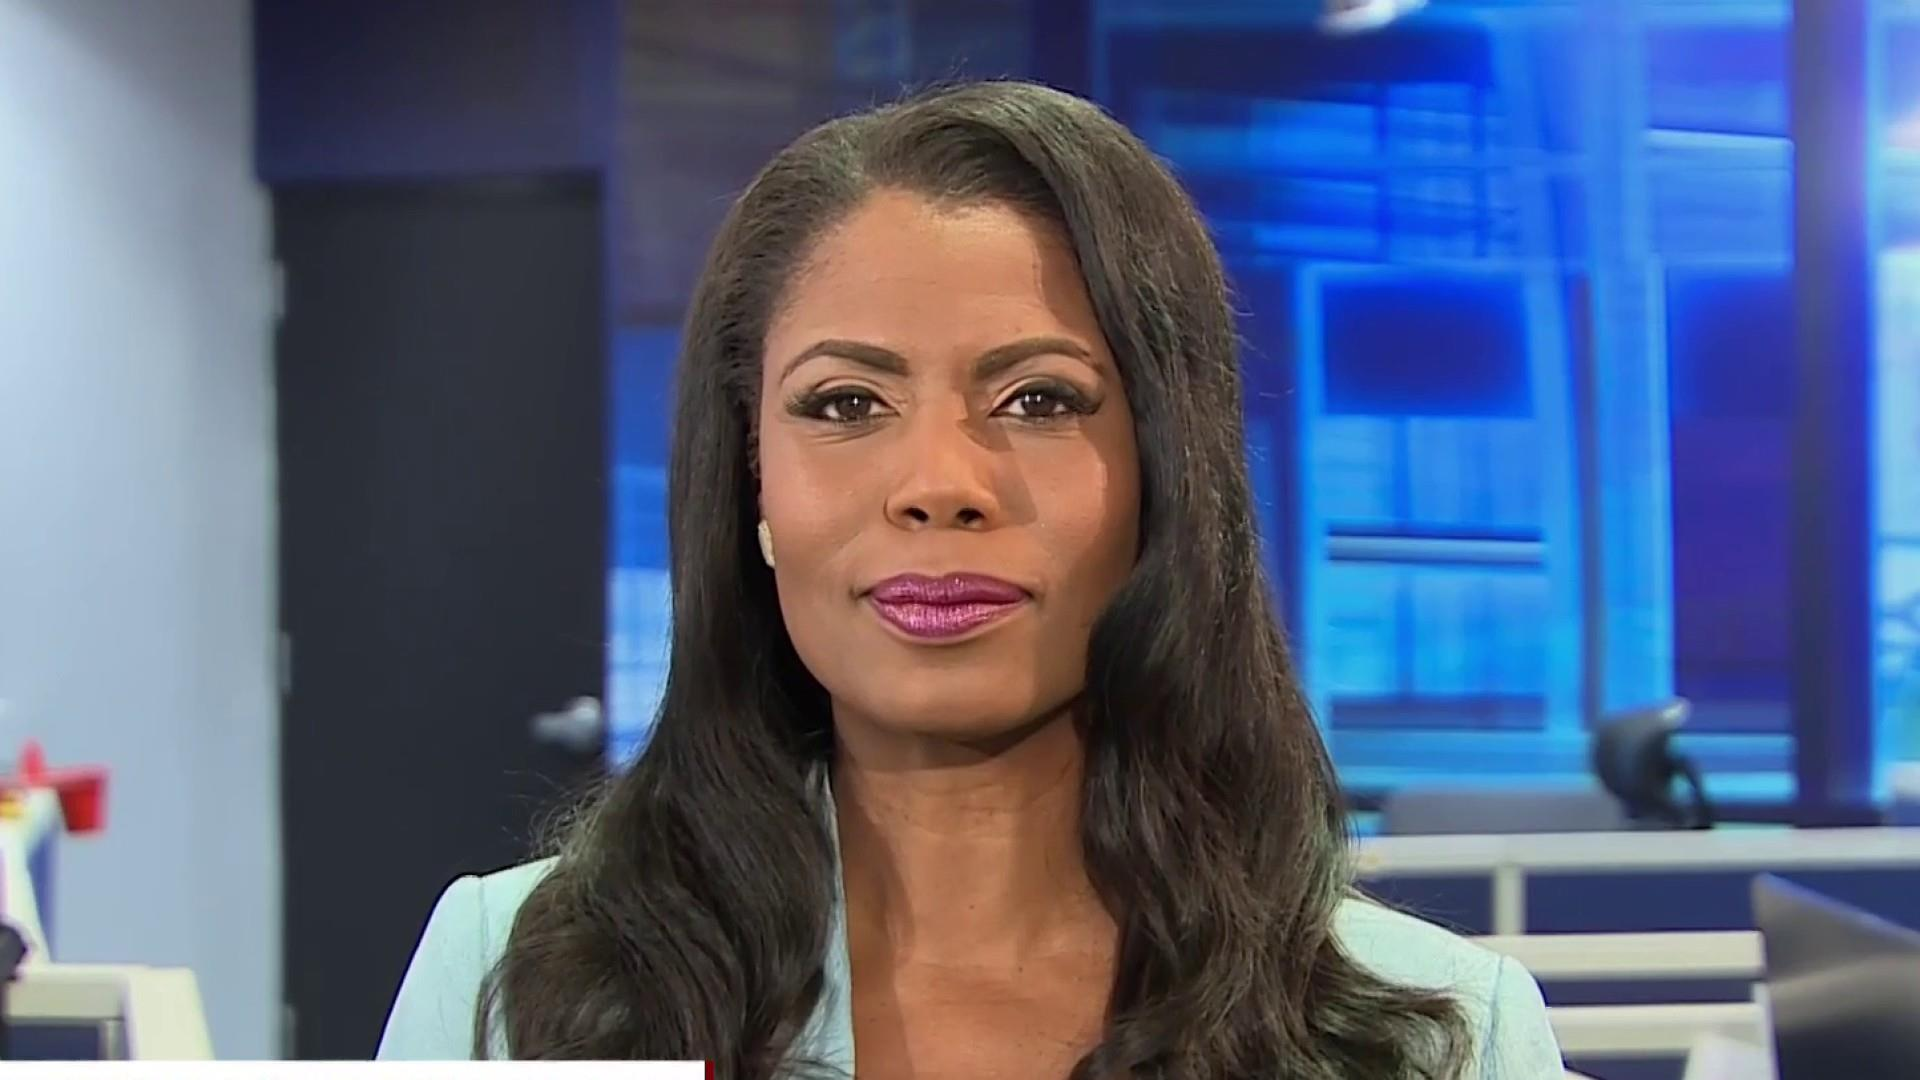 Omarosa Manigault Newman says she's 'not buying' Trump's 'spin' on Mueller report